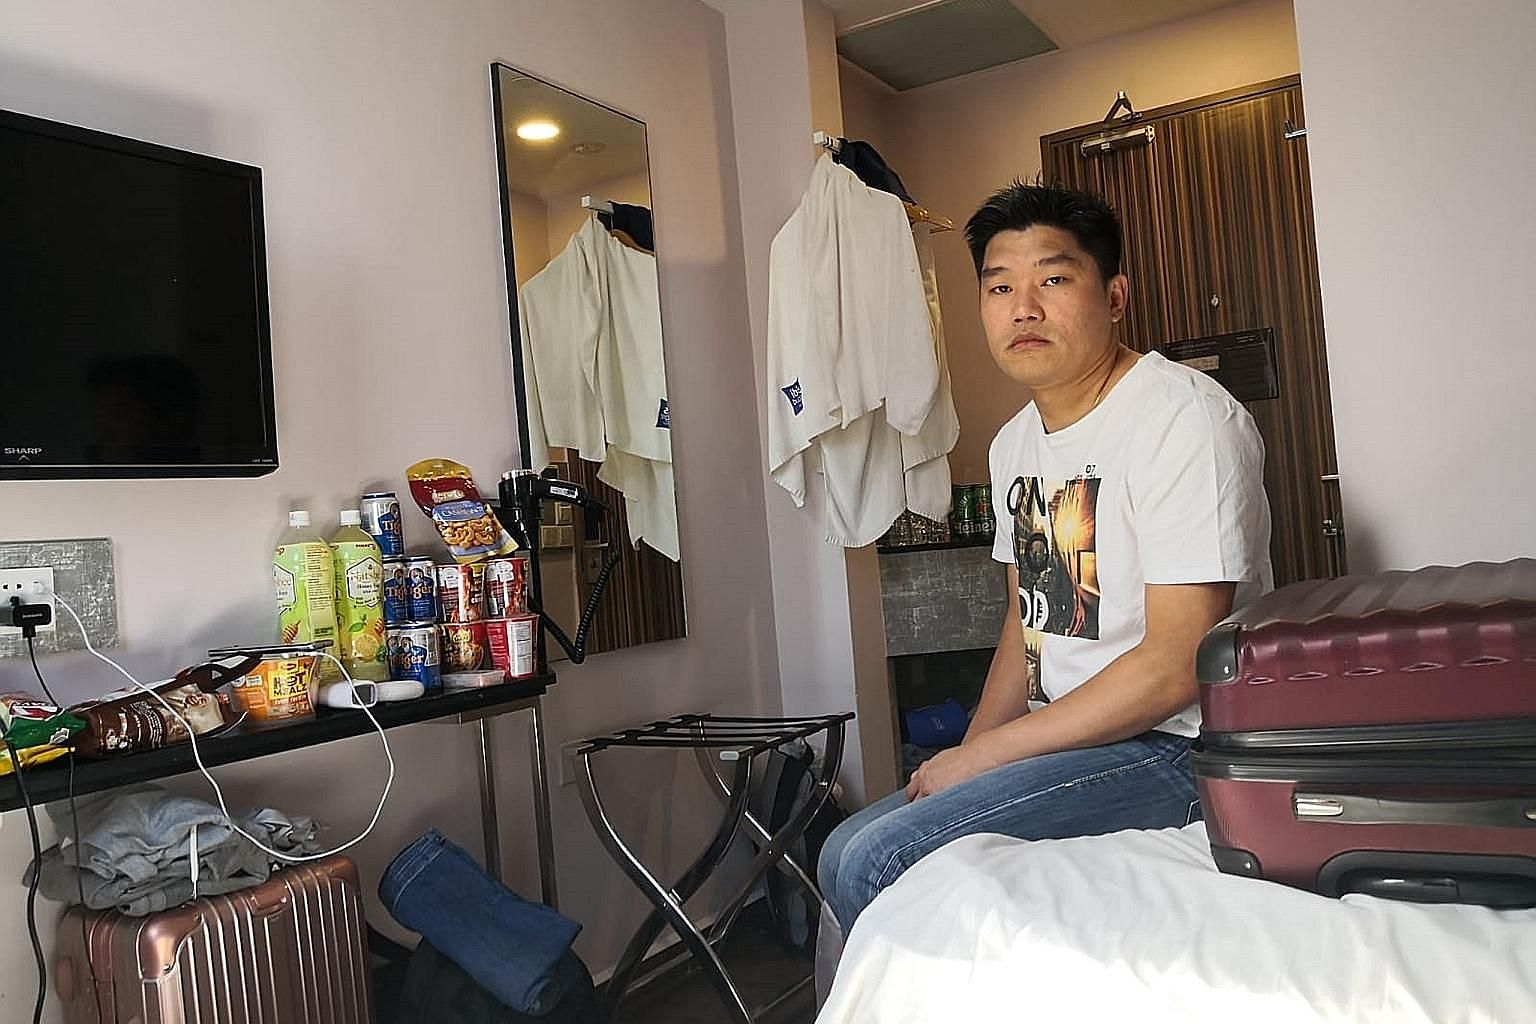 """Mr Eddie Chow, seen below in a video call with his family, said his wife """"is being left alone to take care of our eight-month-old son and five-year-old daughter"""". PHOTOS: GAIN CITY"""